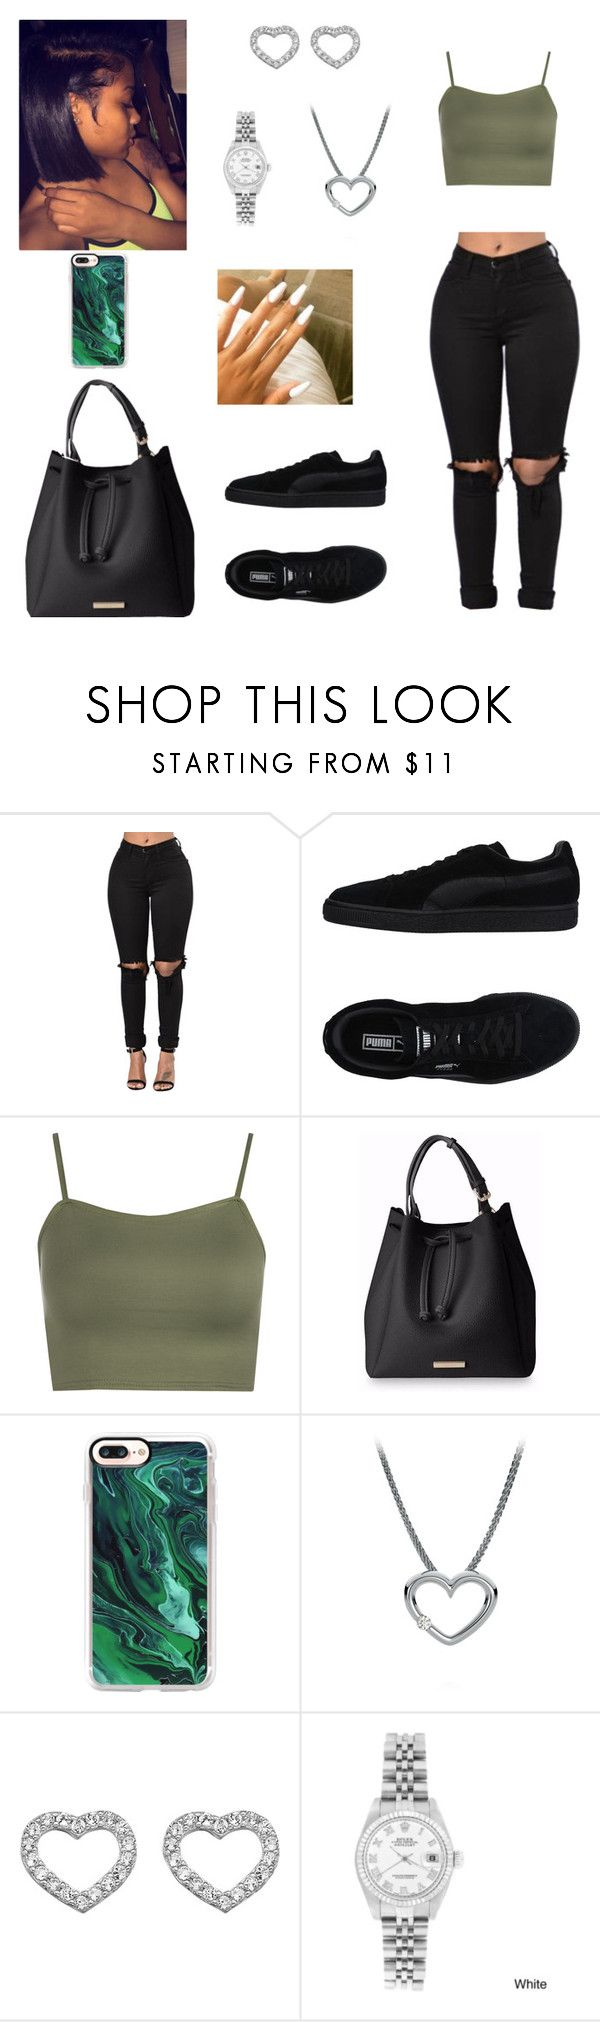 """""""Untitled #735"""" by honeycombs23 ❤ liked on Polyvore featuring Puma, WearAll, Casetify, Hot Diamonds and Rolex"""